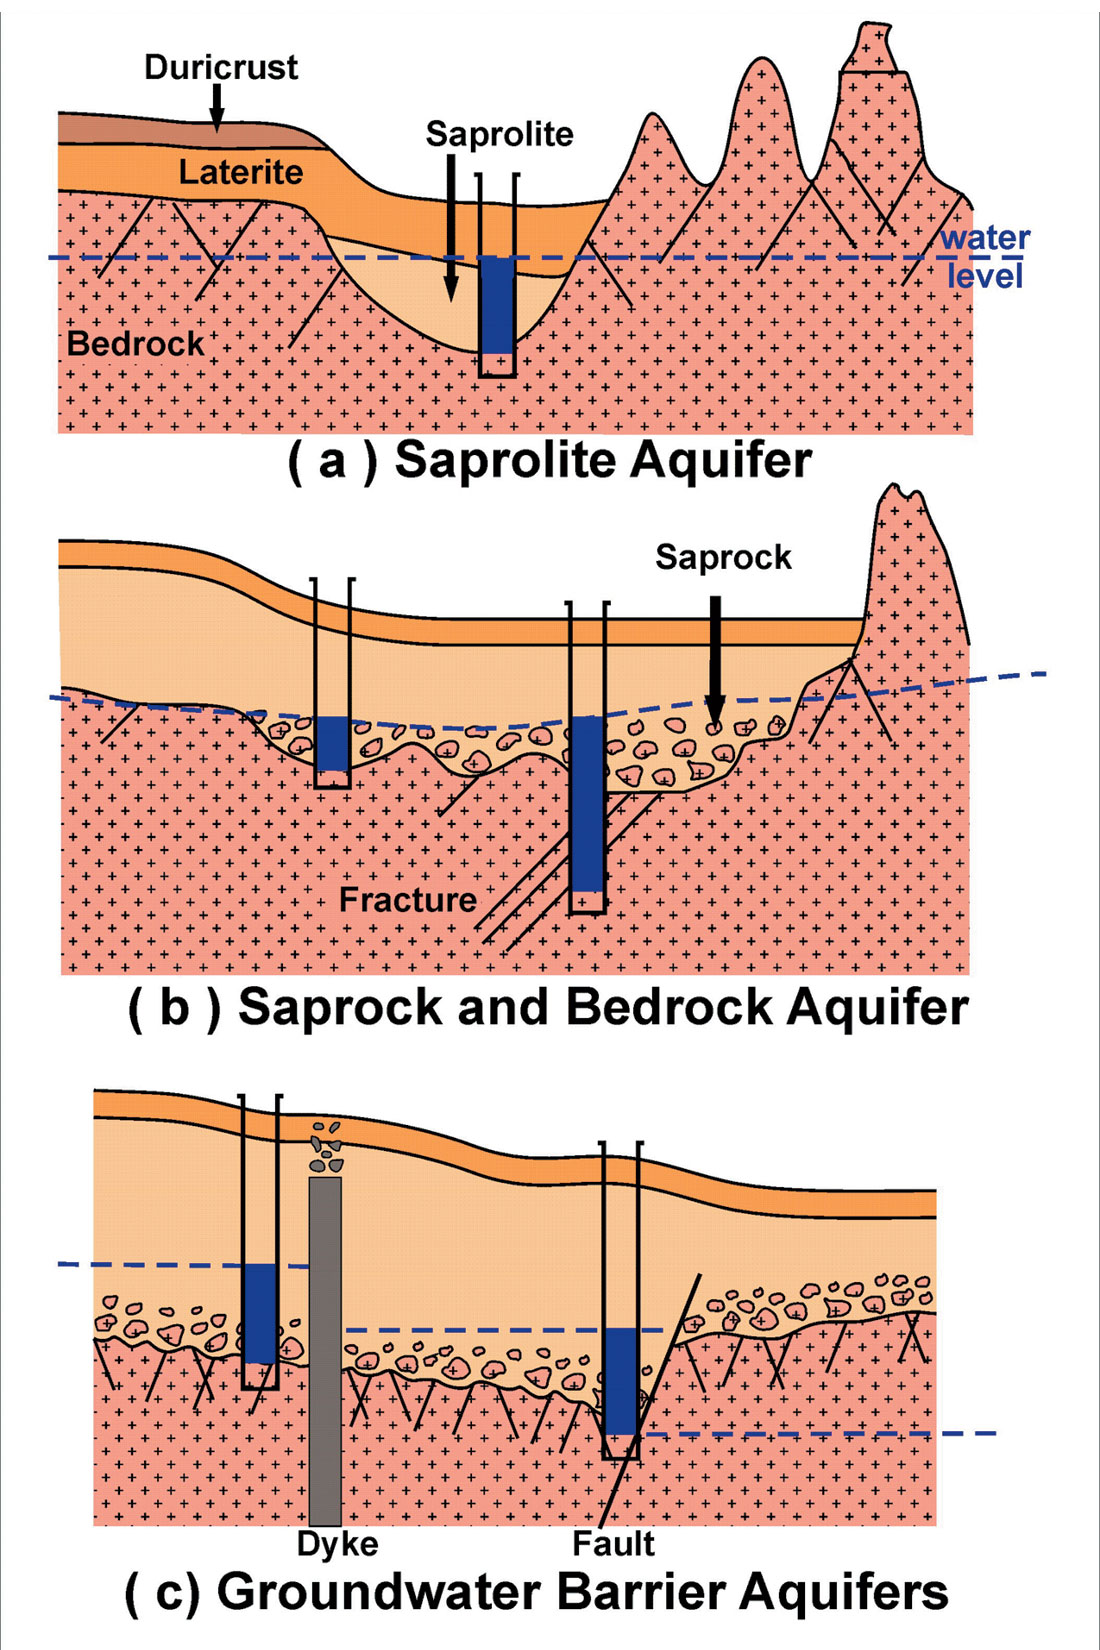 Open Pit Mining Diagram additionally Information System Diagram likewise Simple Internal Organ Diagram besides Types Of Single Phase Induction Motors in addition Api Flow Diagram. on types of schematic diagrams